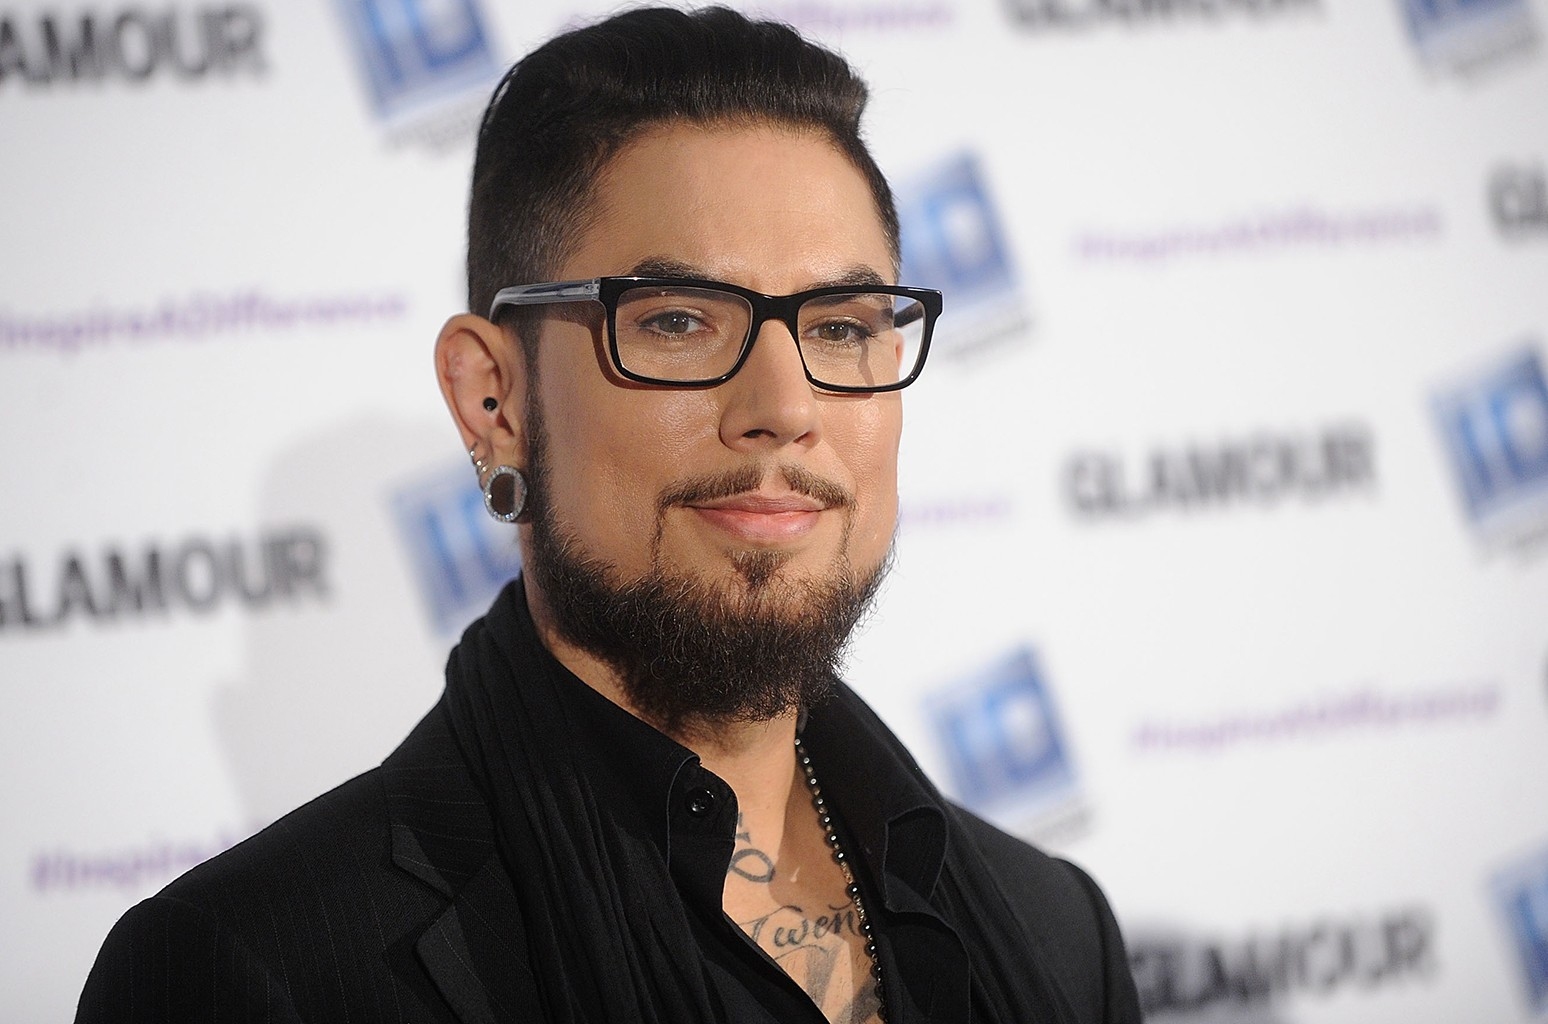 Dave Navarro attends the 2016 Inspire A Difference Gala at Dream Downtown Hotel on Oct. 26, 2016 in New York City.